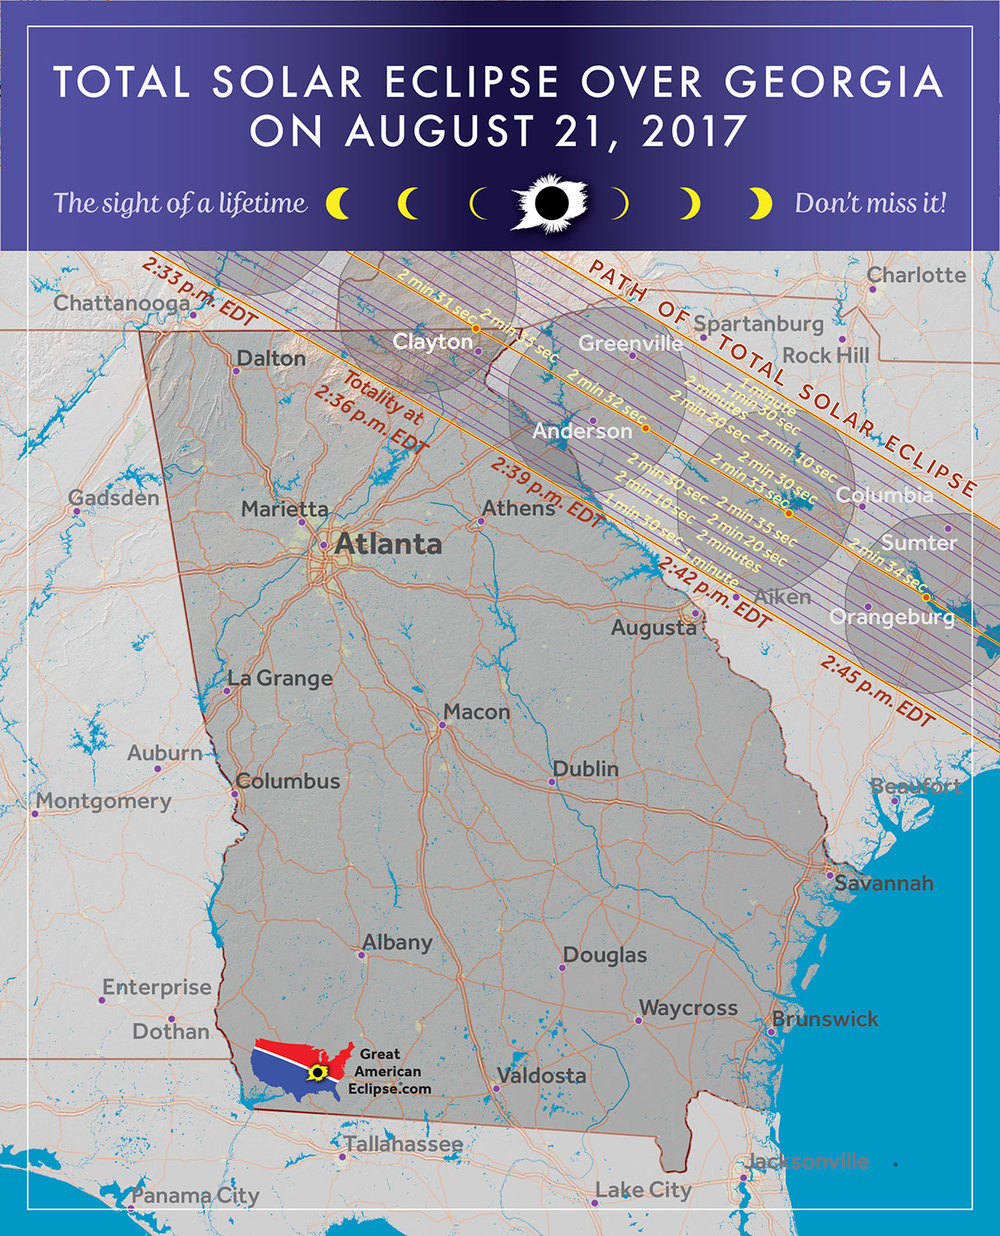 Many People From Atlanta Will Drive North Into The Path Of Totality